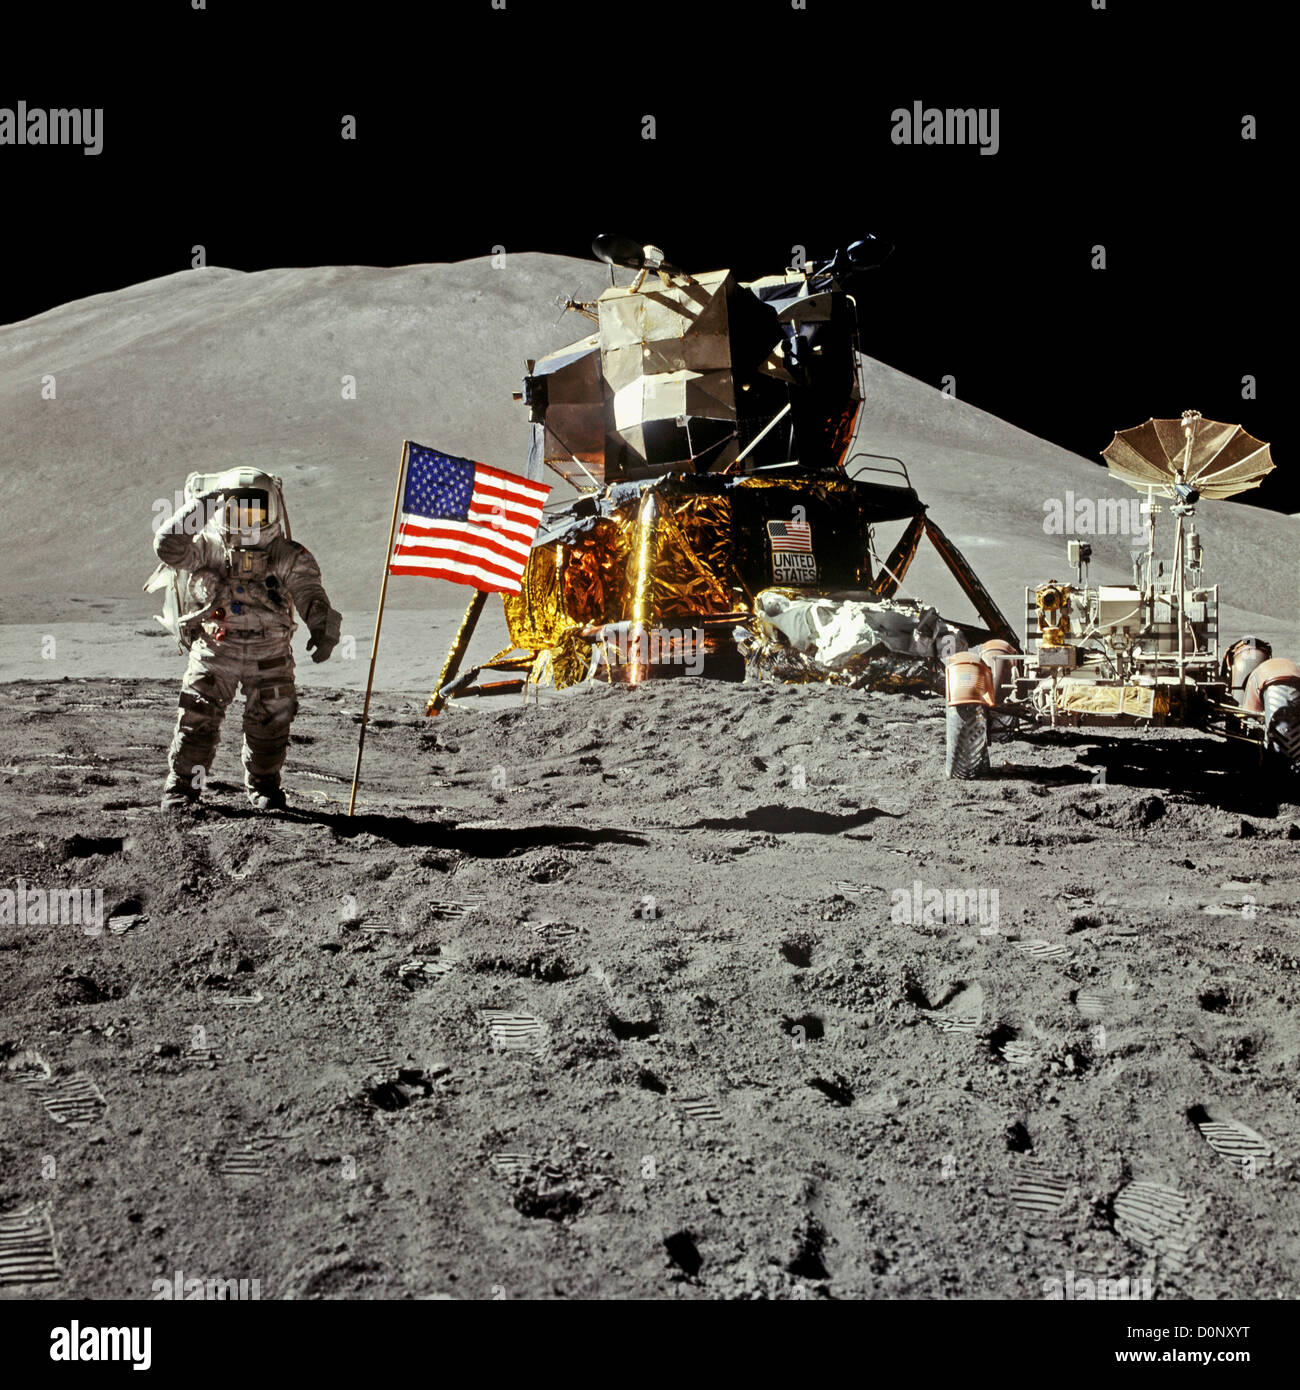 Apollo 15 Astronaut Saluting on the Moon With the Lunar Lander Falcon and Rover - Stock Image